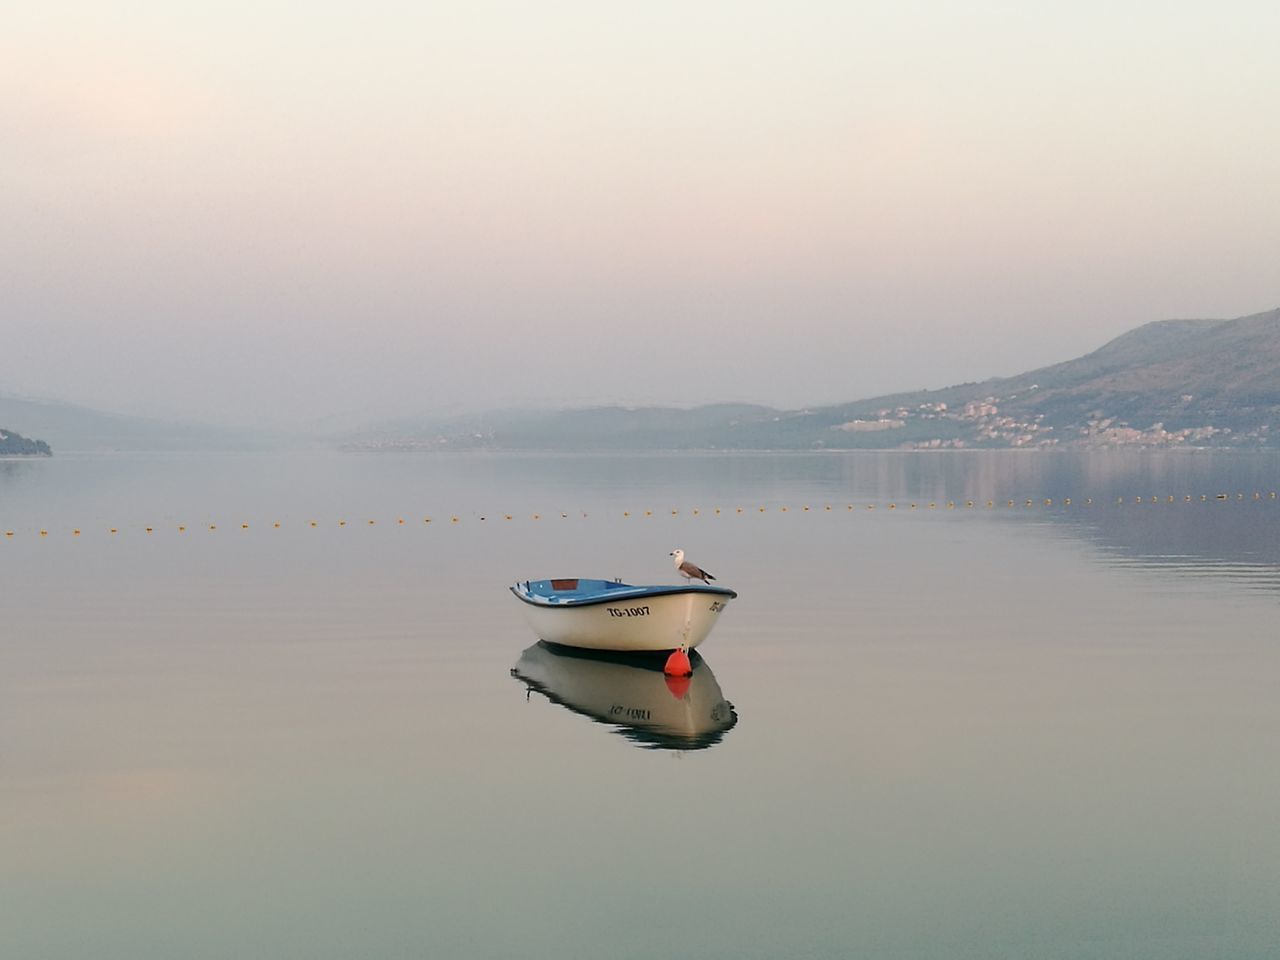 My Year My View Sea Boat Morning Seagull Beauty In Nature Foggy Morning Morning View Landscape